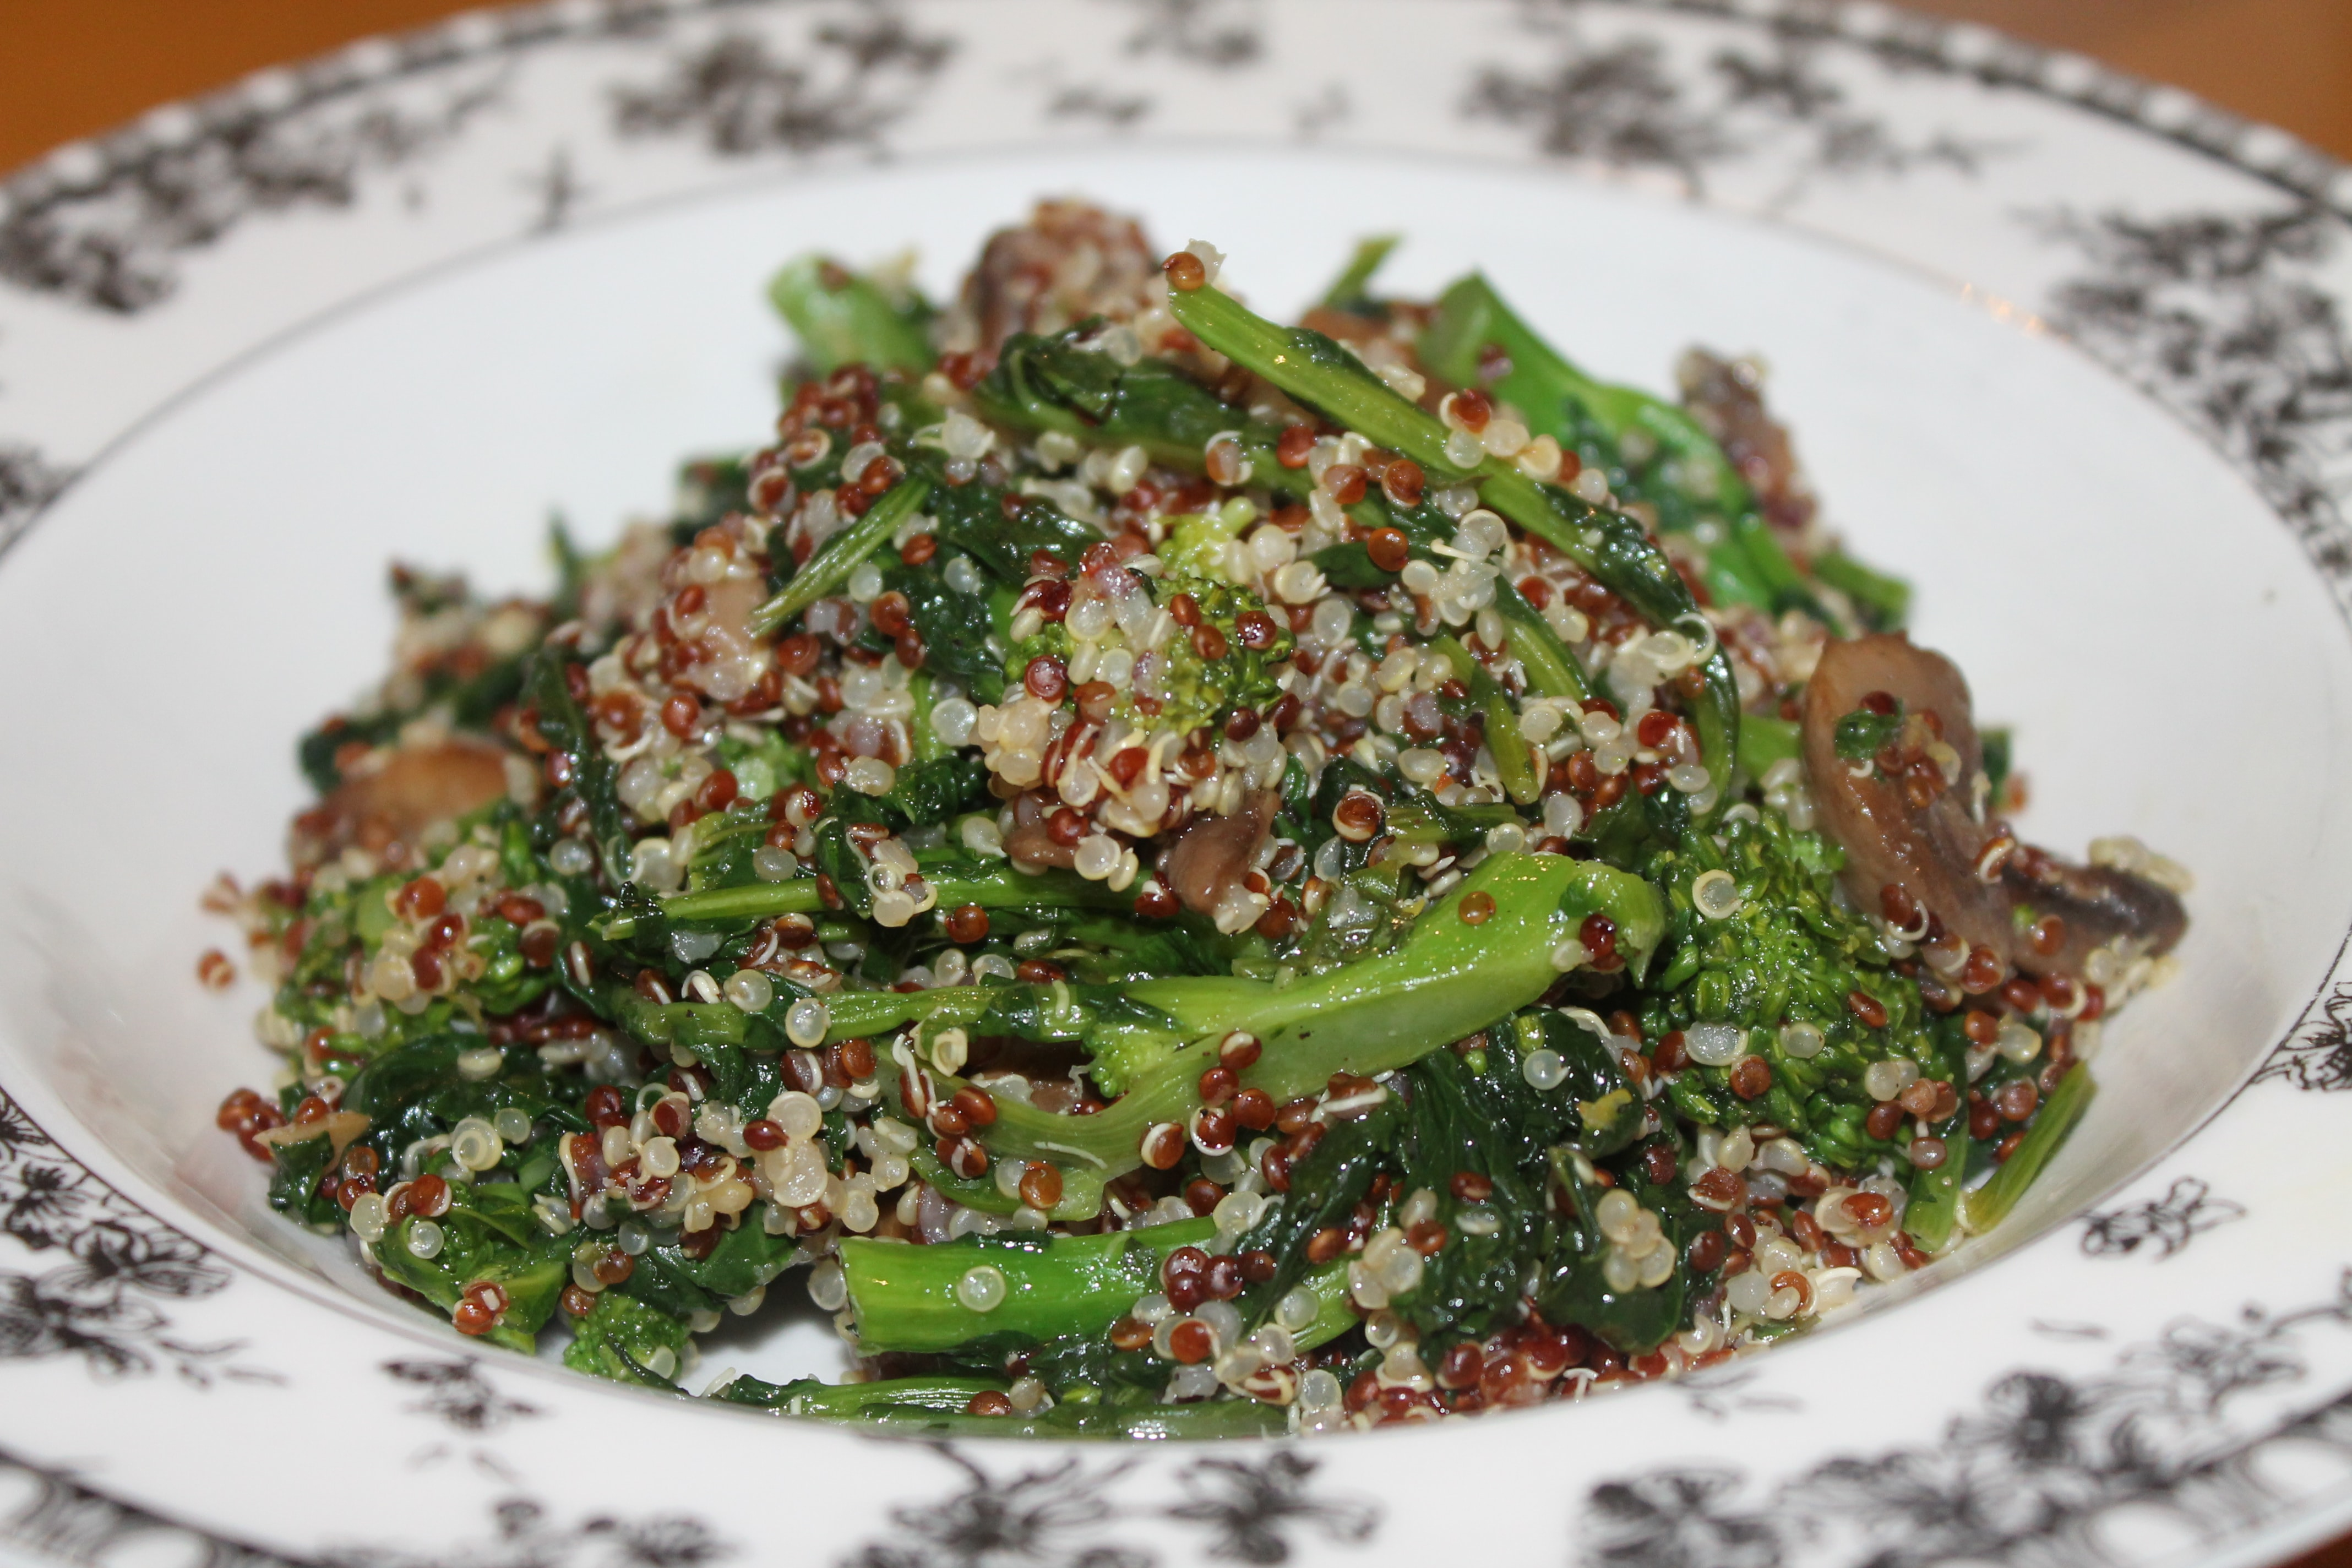 Red and White Quinoa Salad with Broccoli Rabe, Mushrooms, and a Basil Lemon Vinaigrette